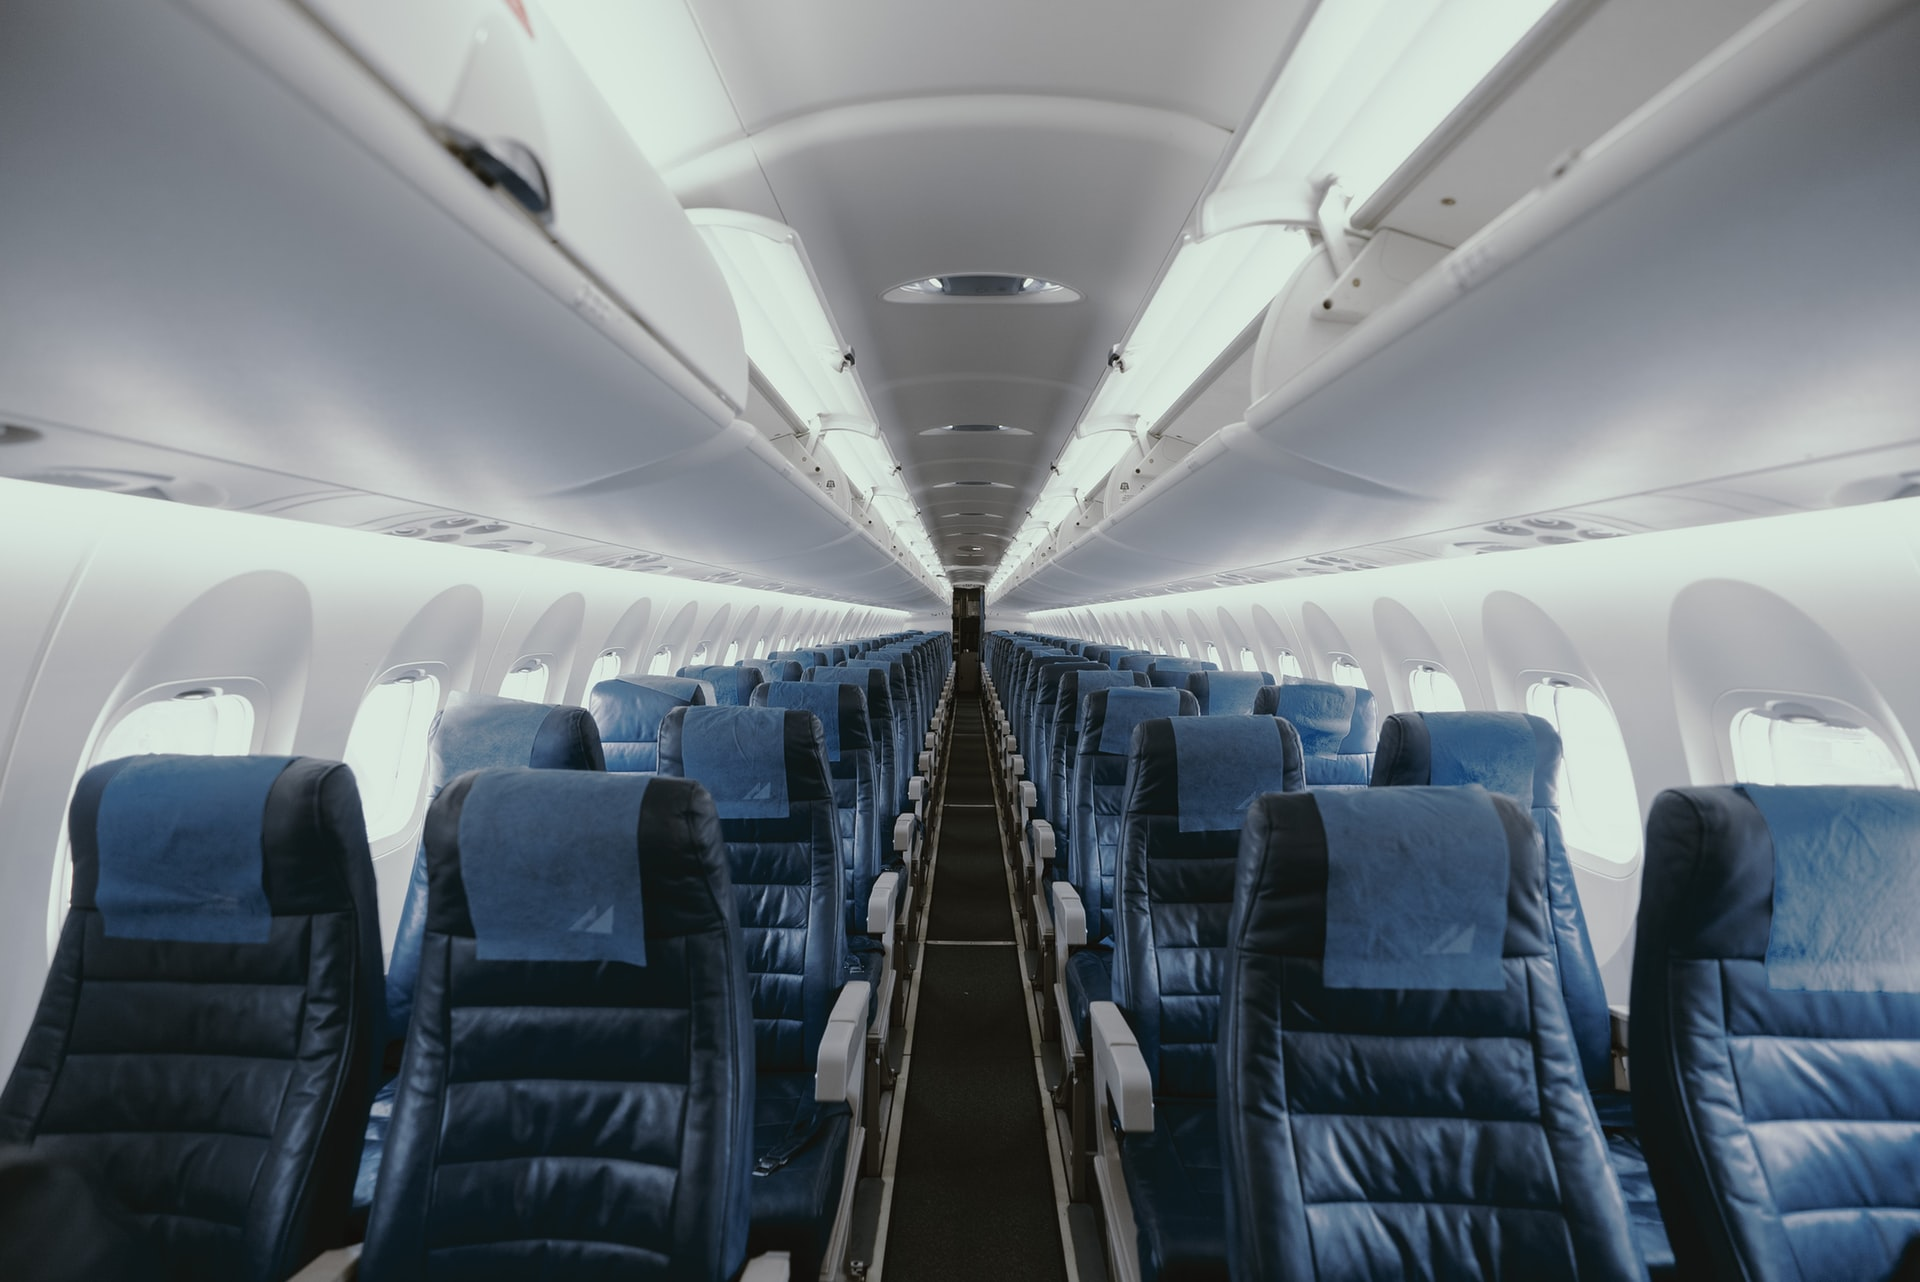 Coronavirus Continues to Crush Airlines and Aviation, 737 MAX Troubles Linger On